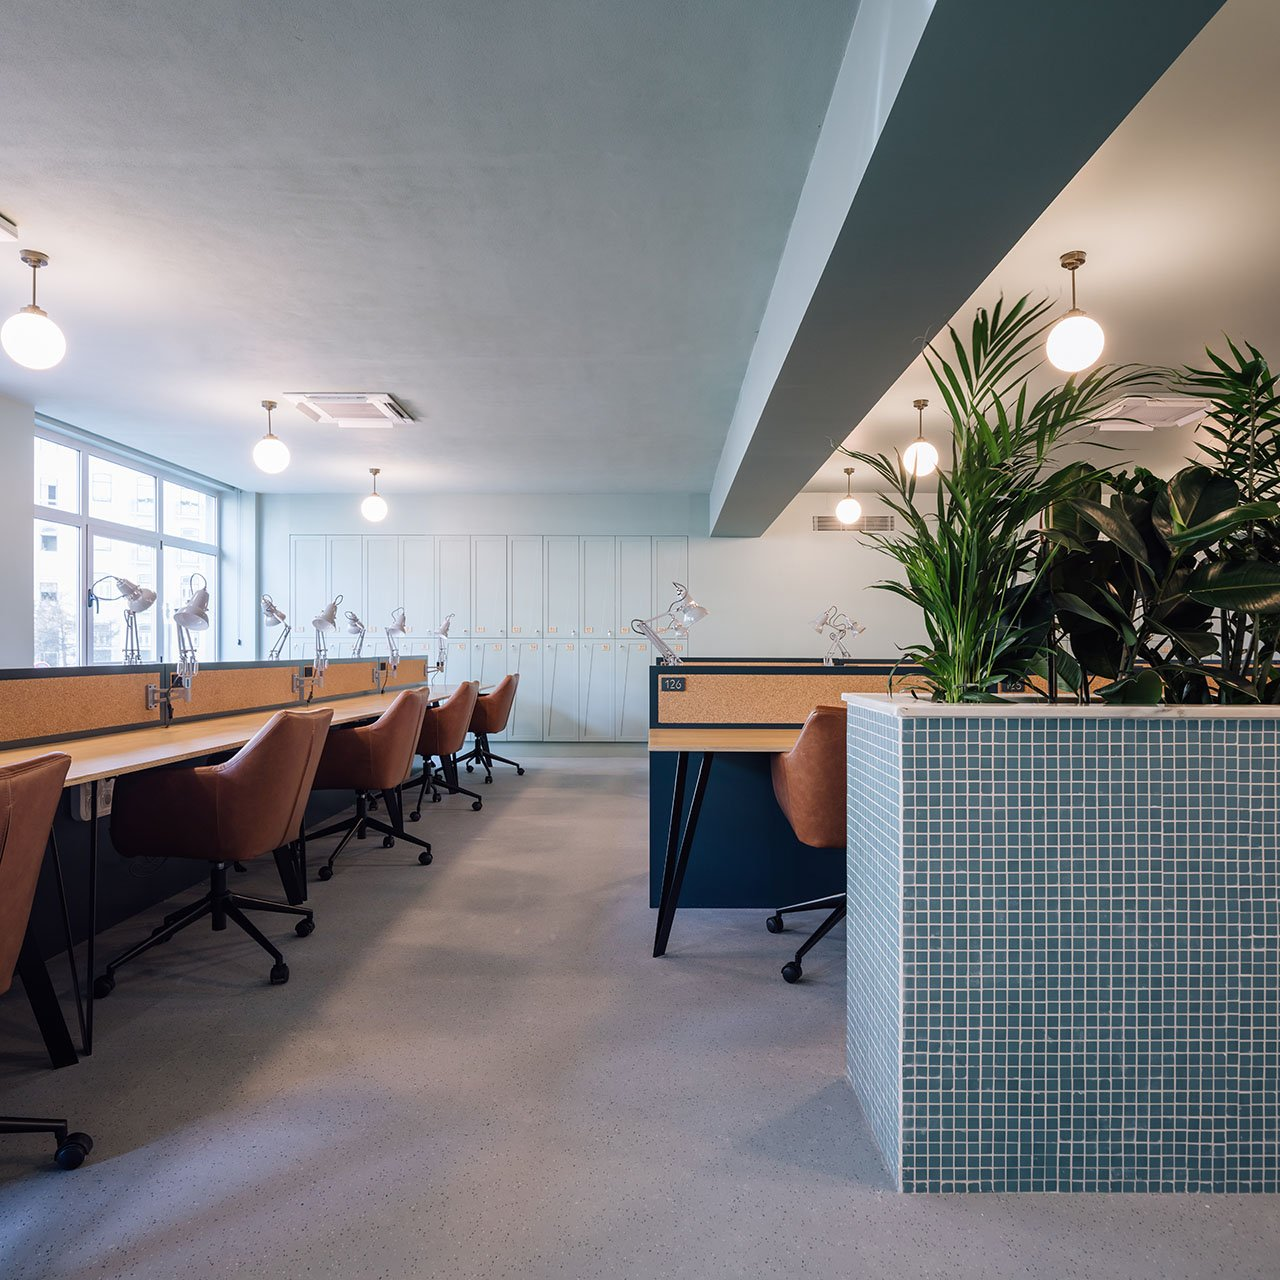 WOOD coworking space by AnahoryAlmeida studio in Lisbon, Portugal.Photo © Francisco Nogueira.